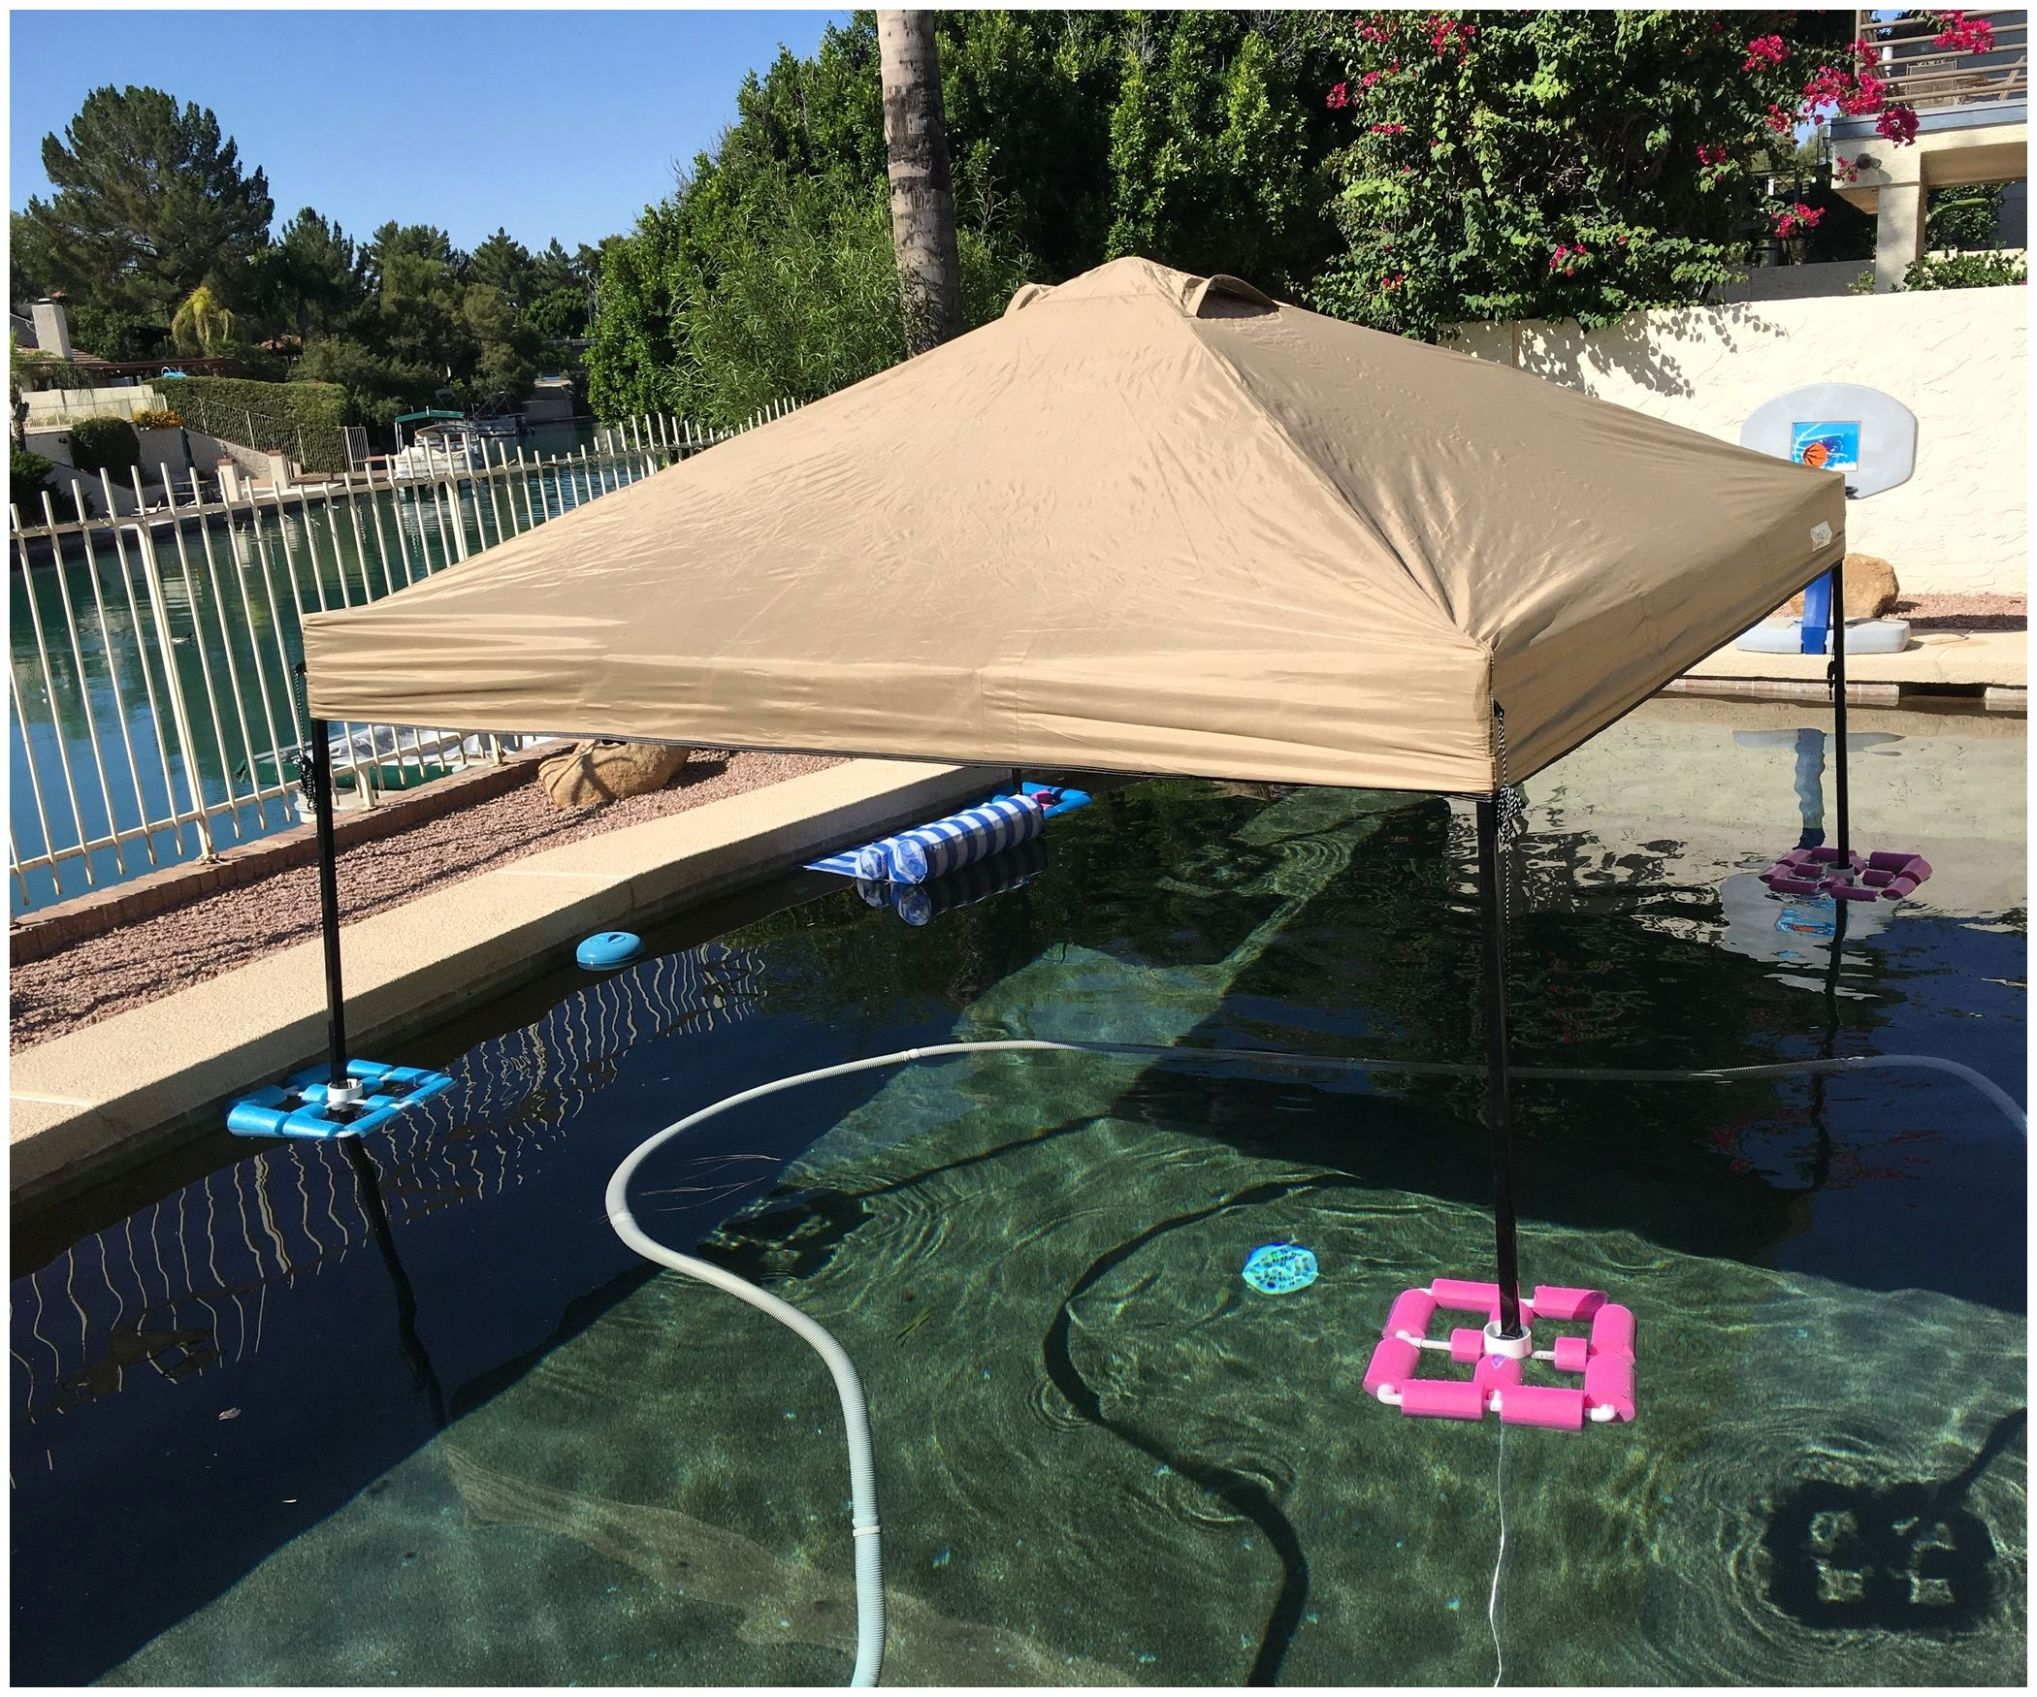 Pool Float with Umbrella 9 9 Beautiful Gallery Pool Float ..